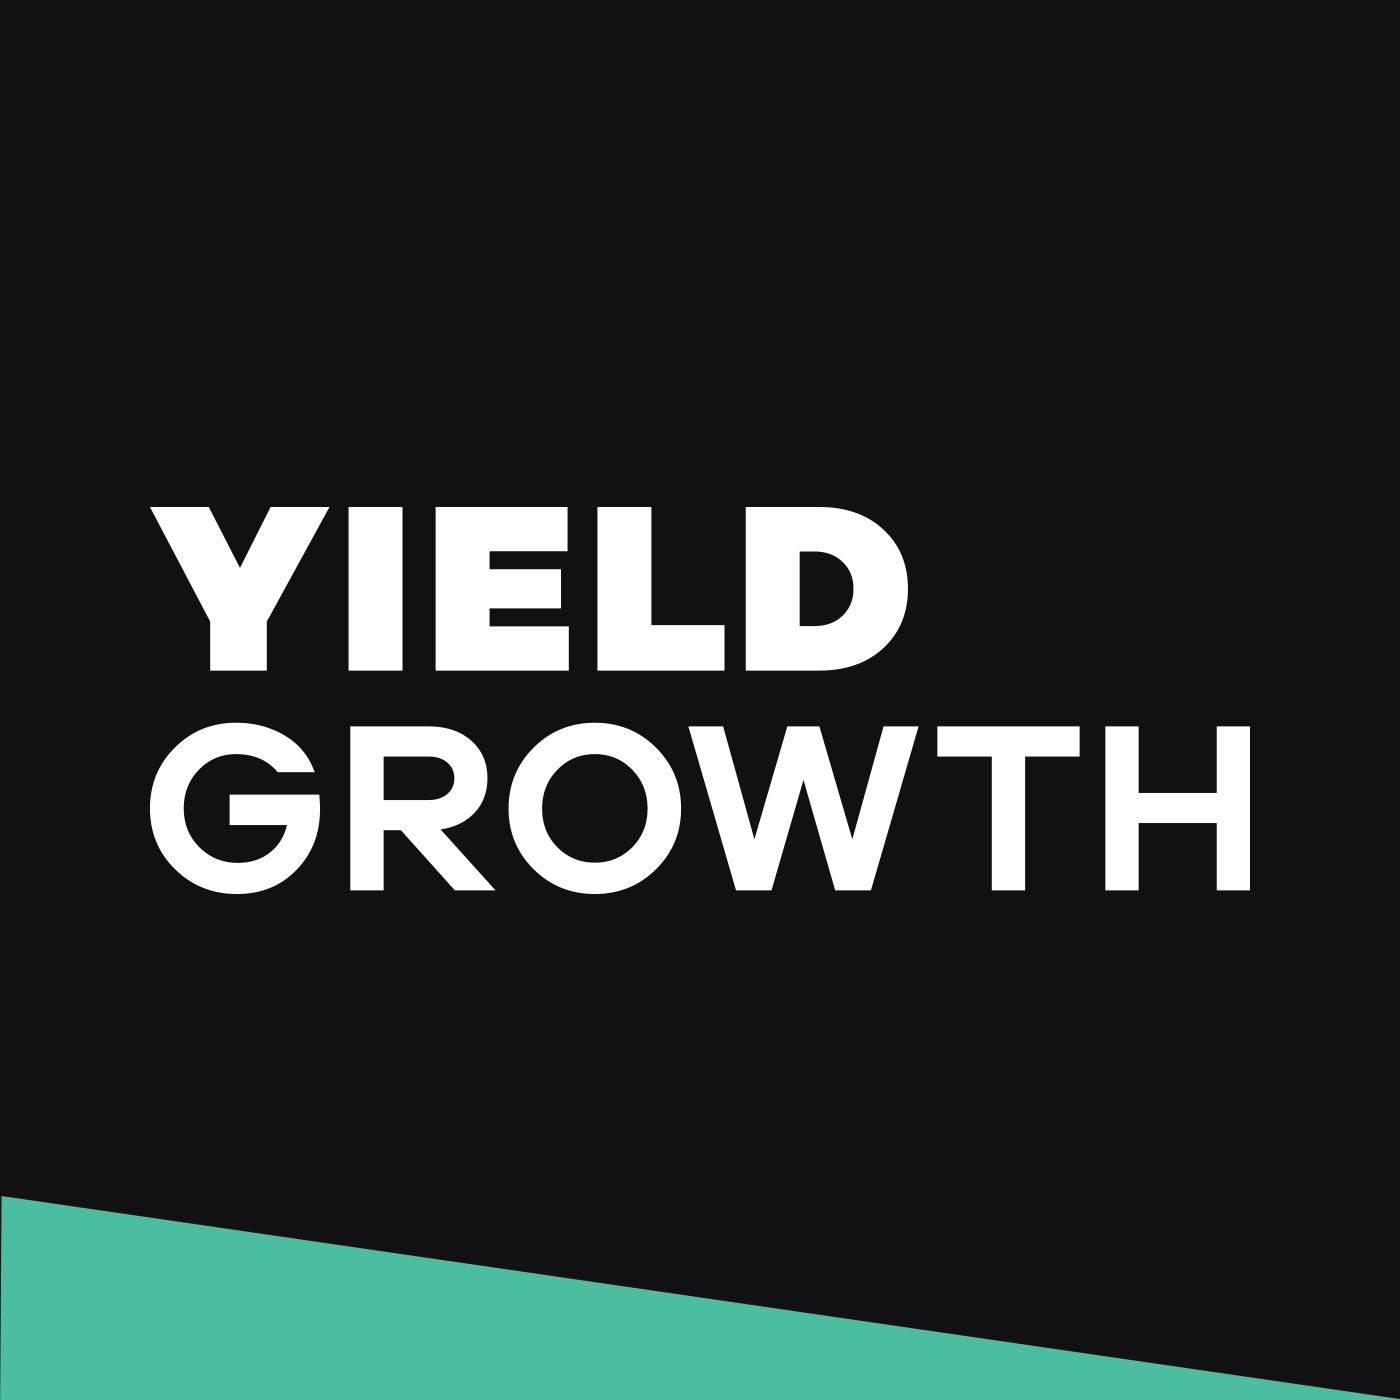 The Yield Growth Corp